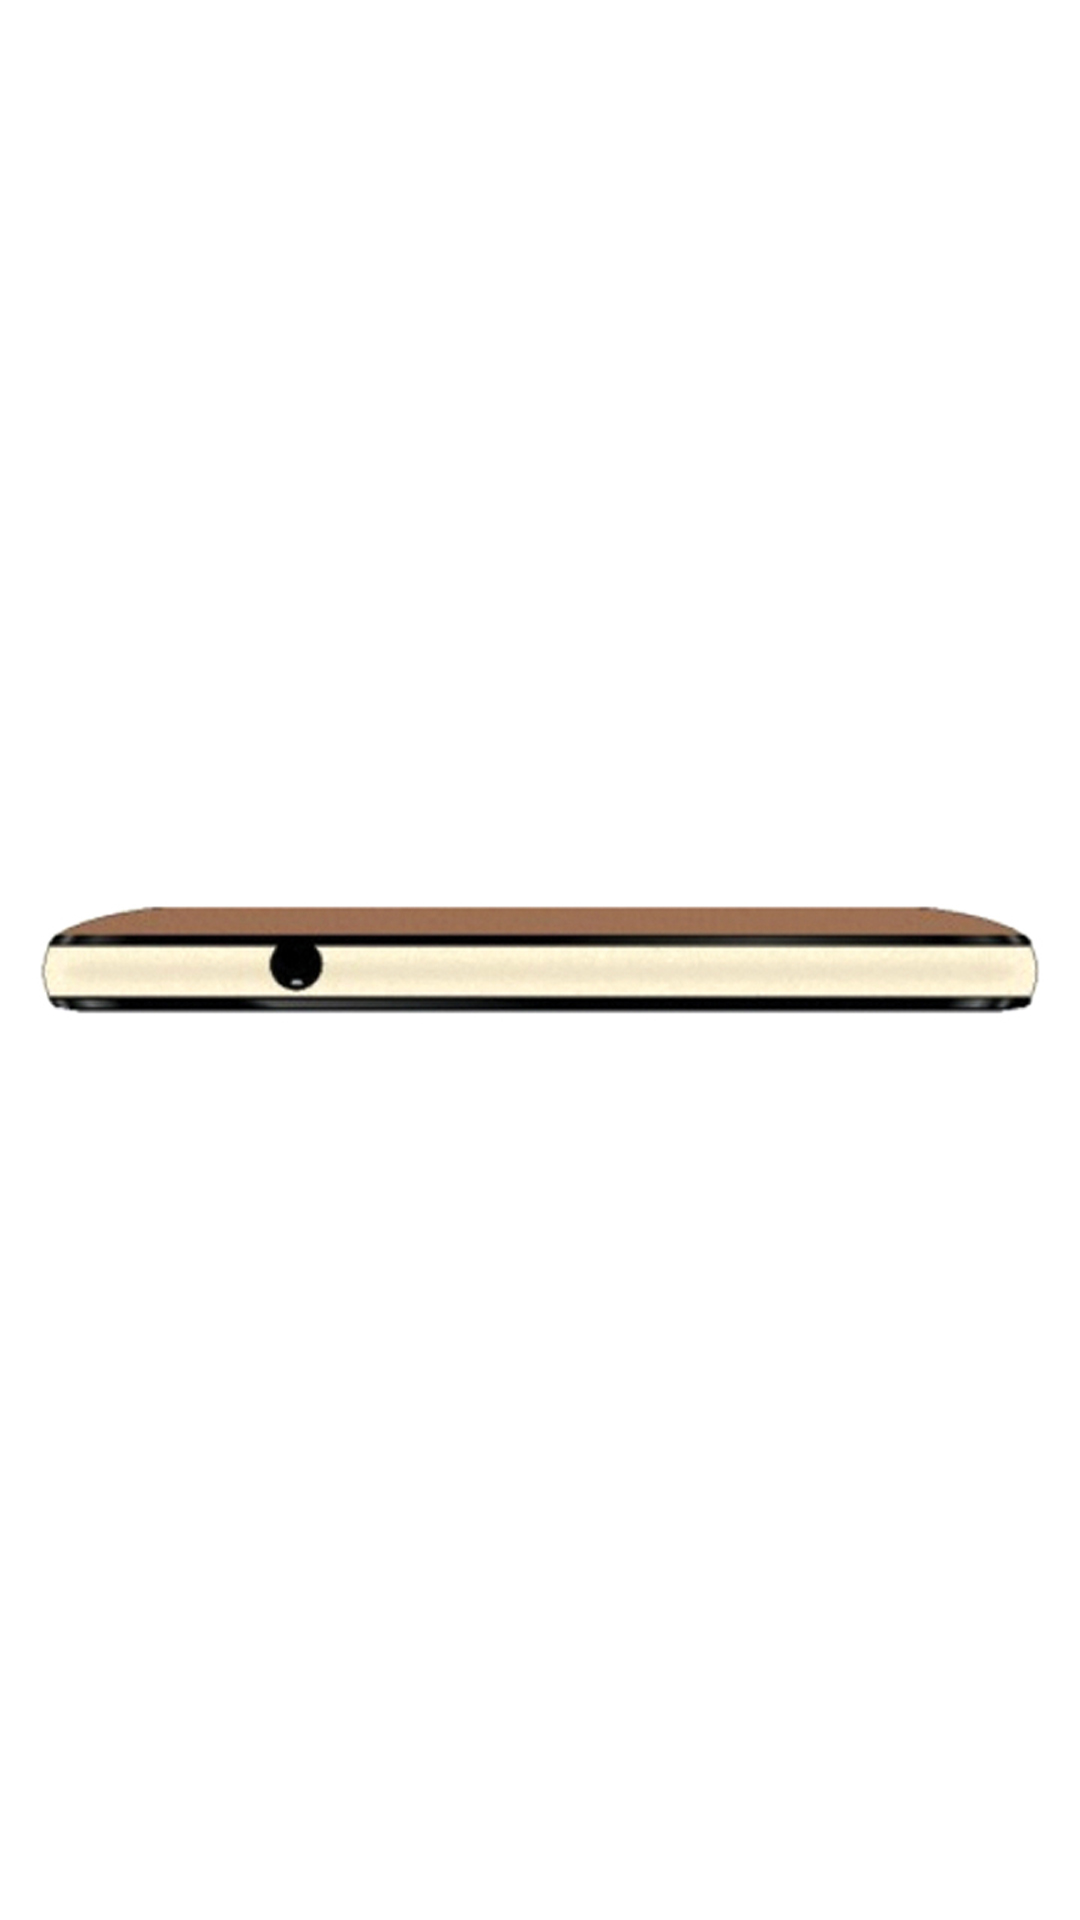 Micromax Canvas 5 (Tan Brown, 16 GB)